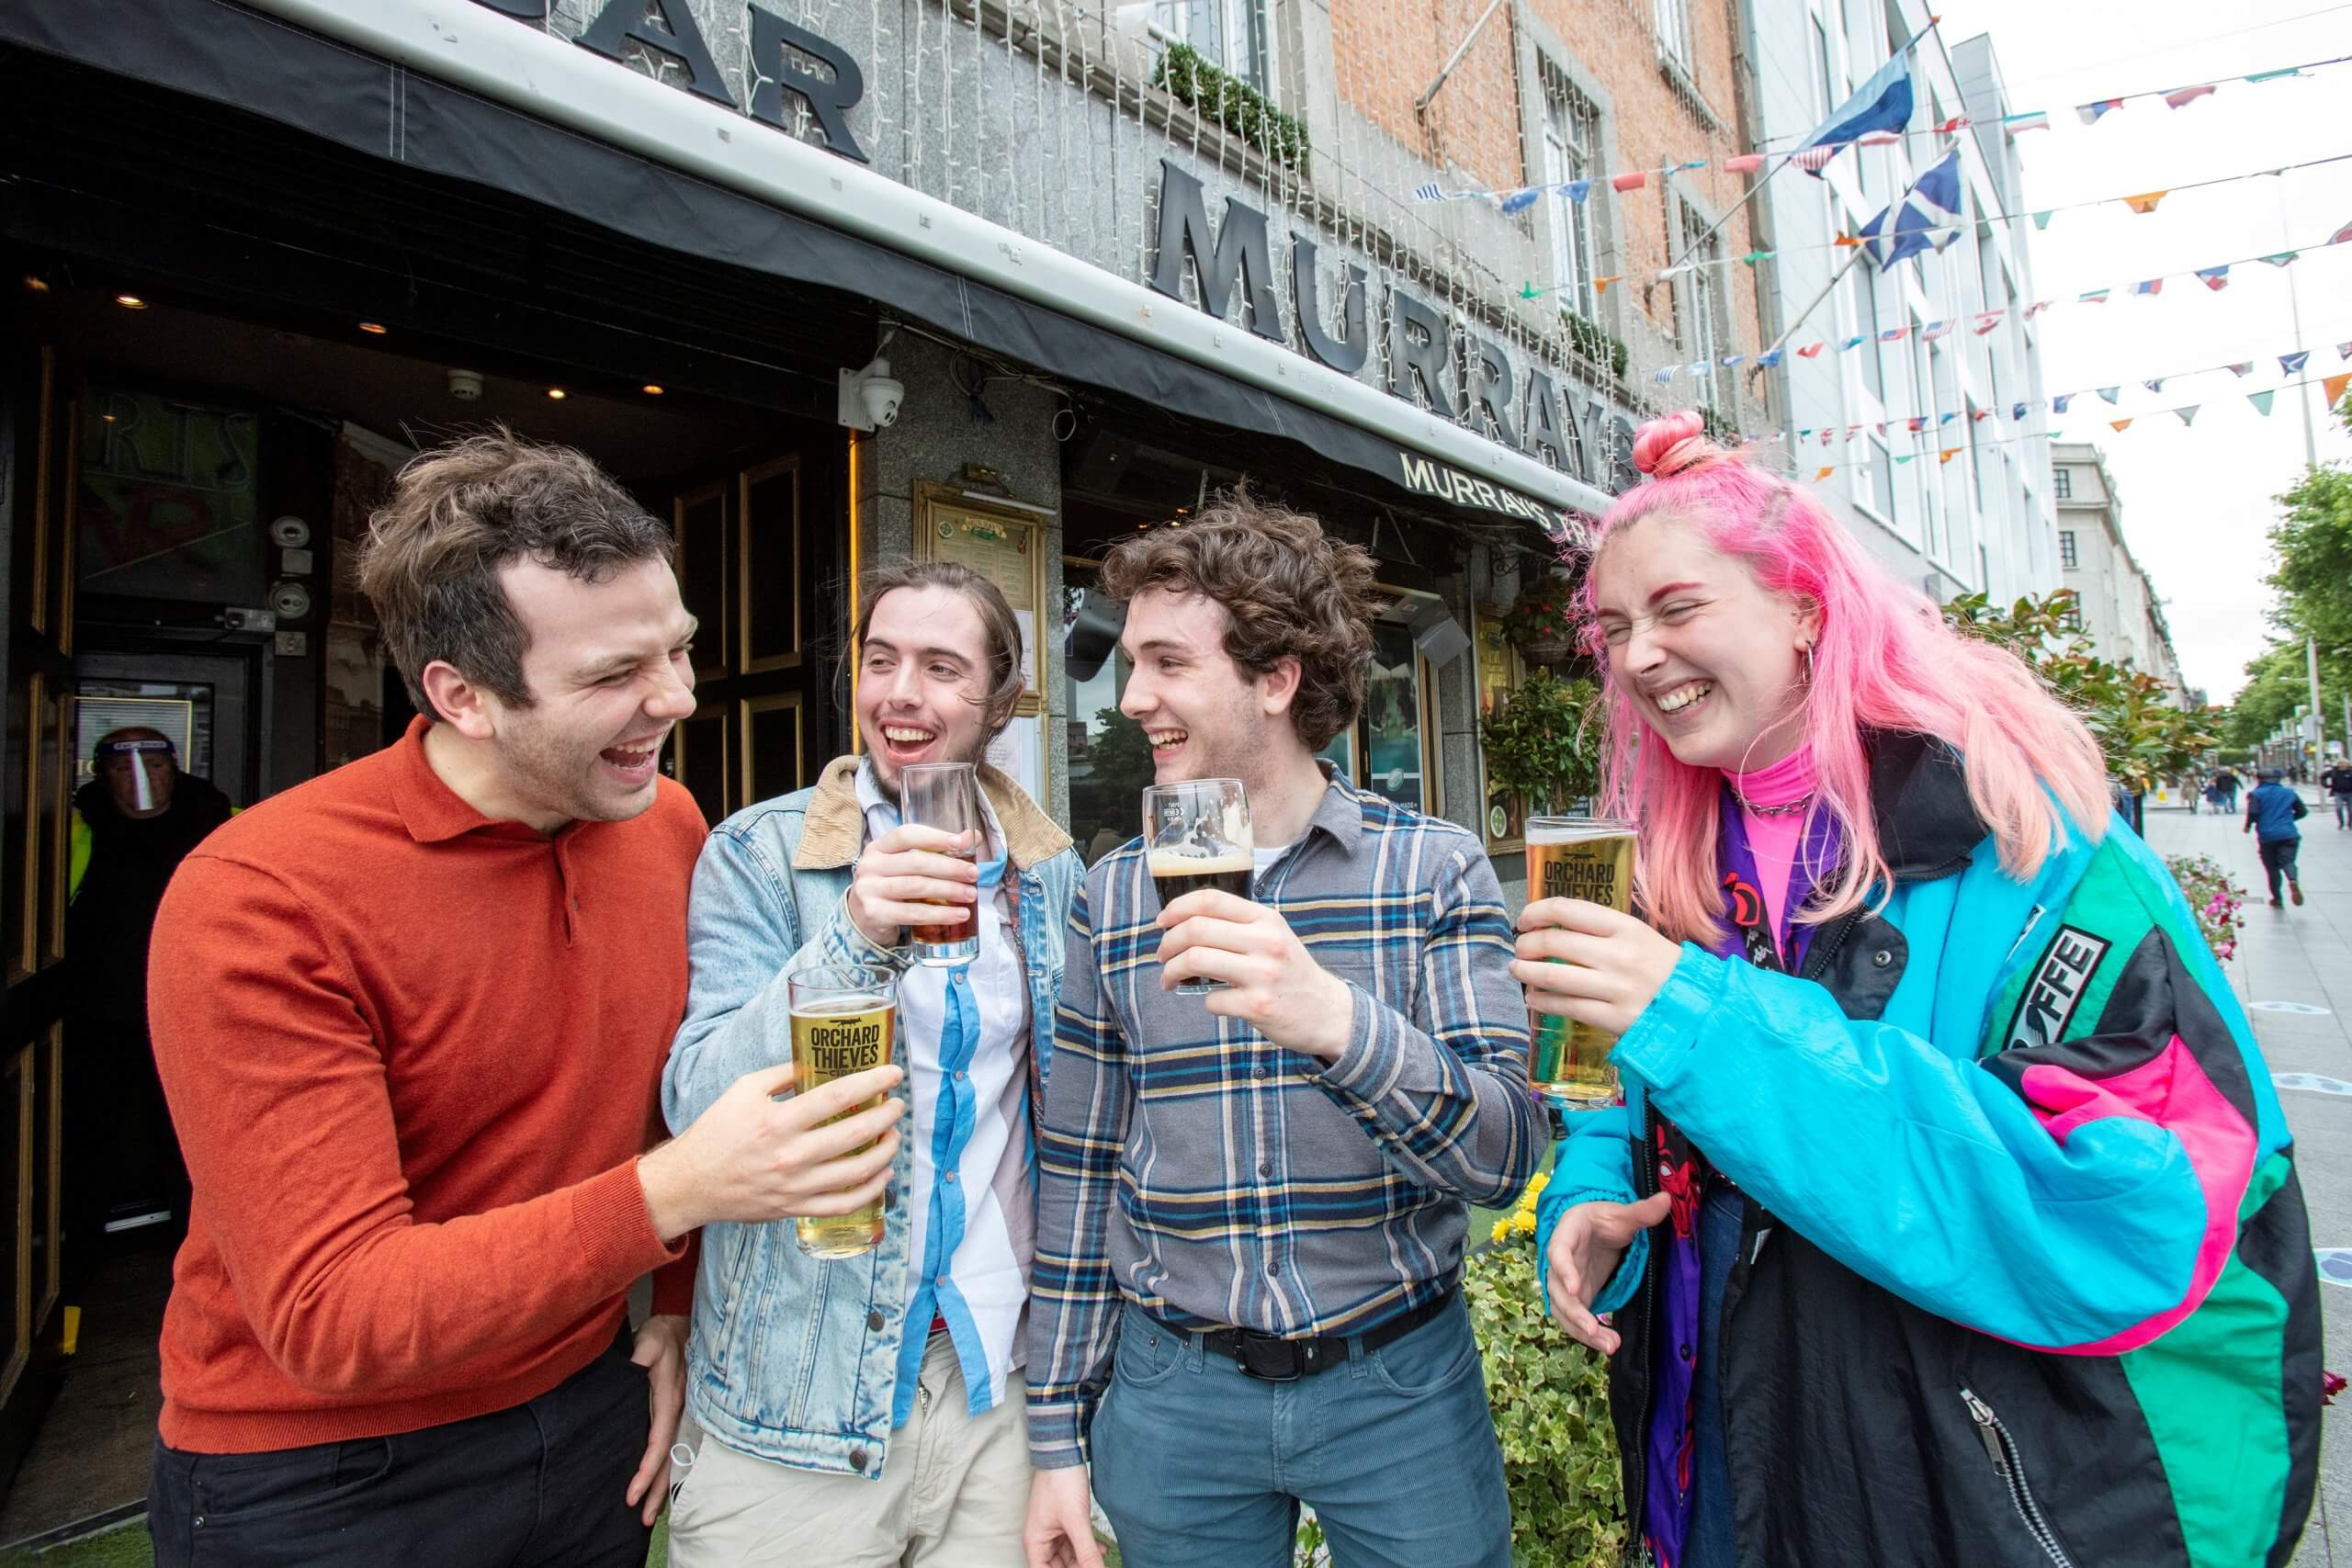 Cost, locals and student life: What to expect when studying in Ireland 🍀